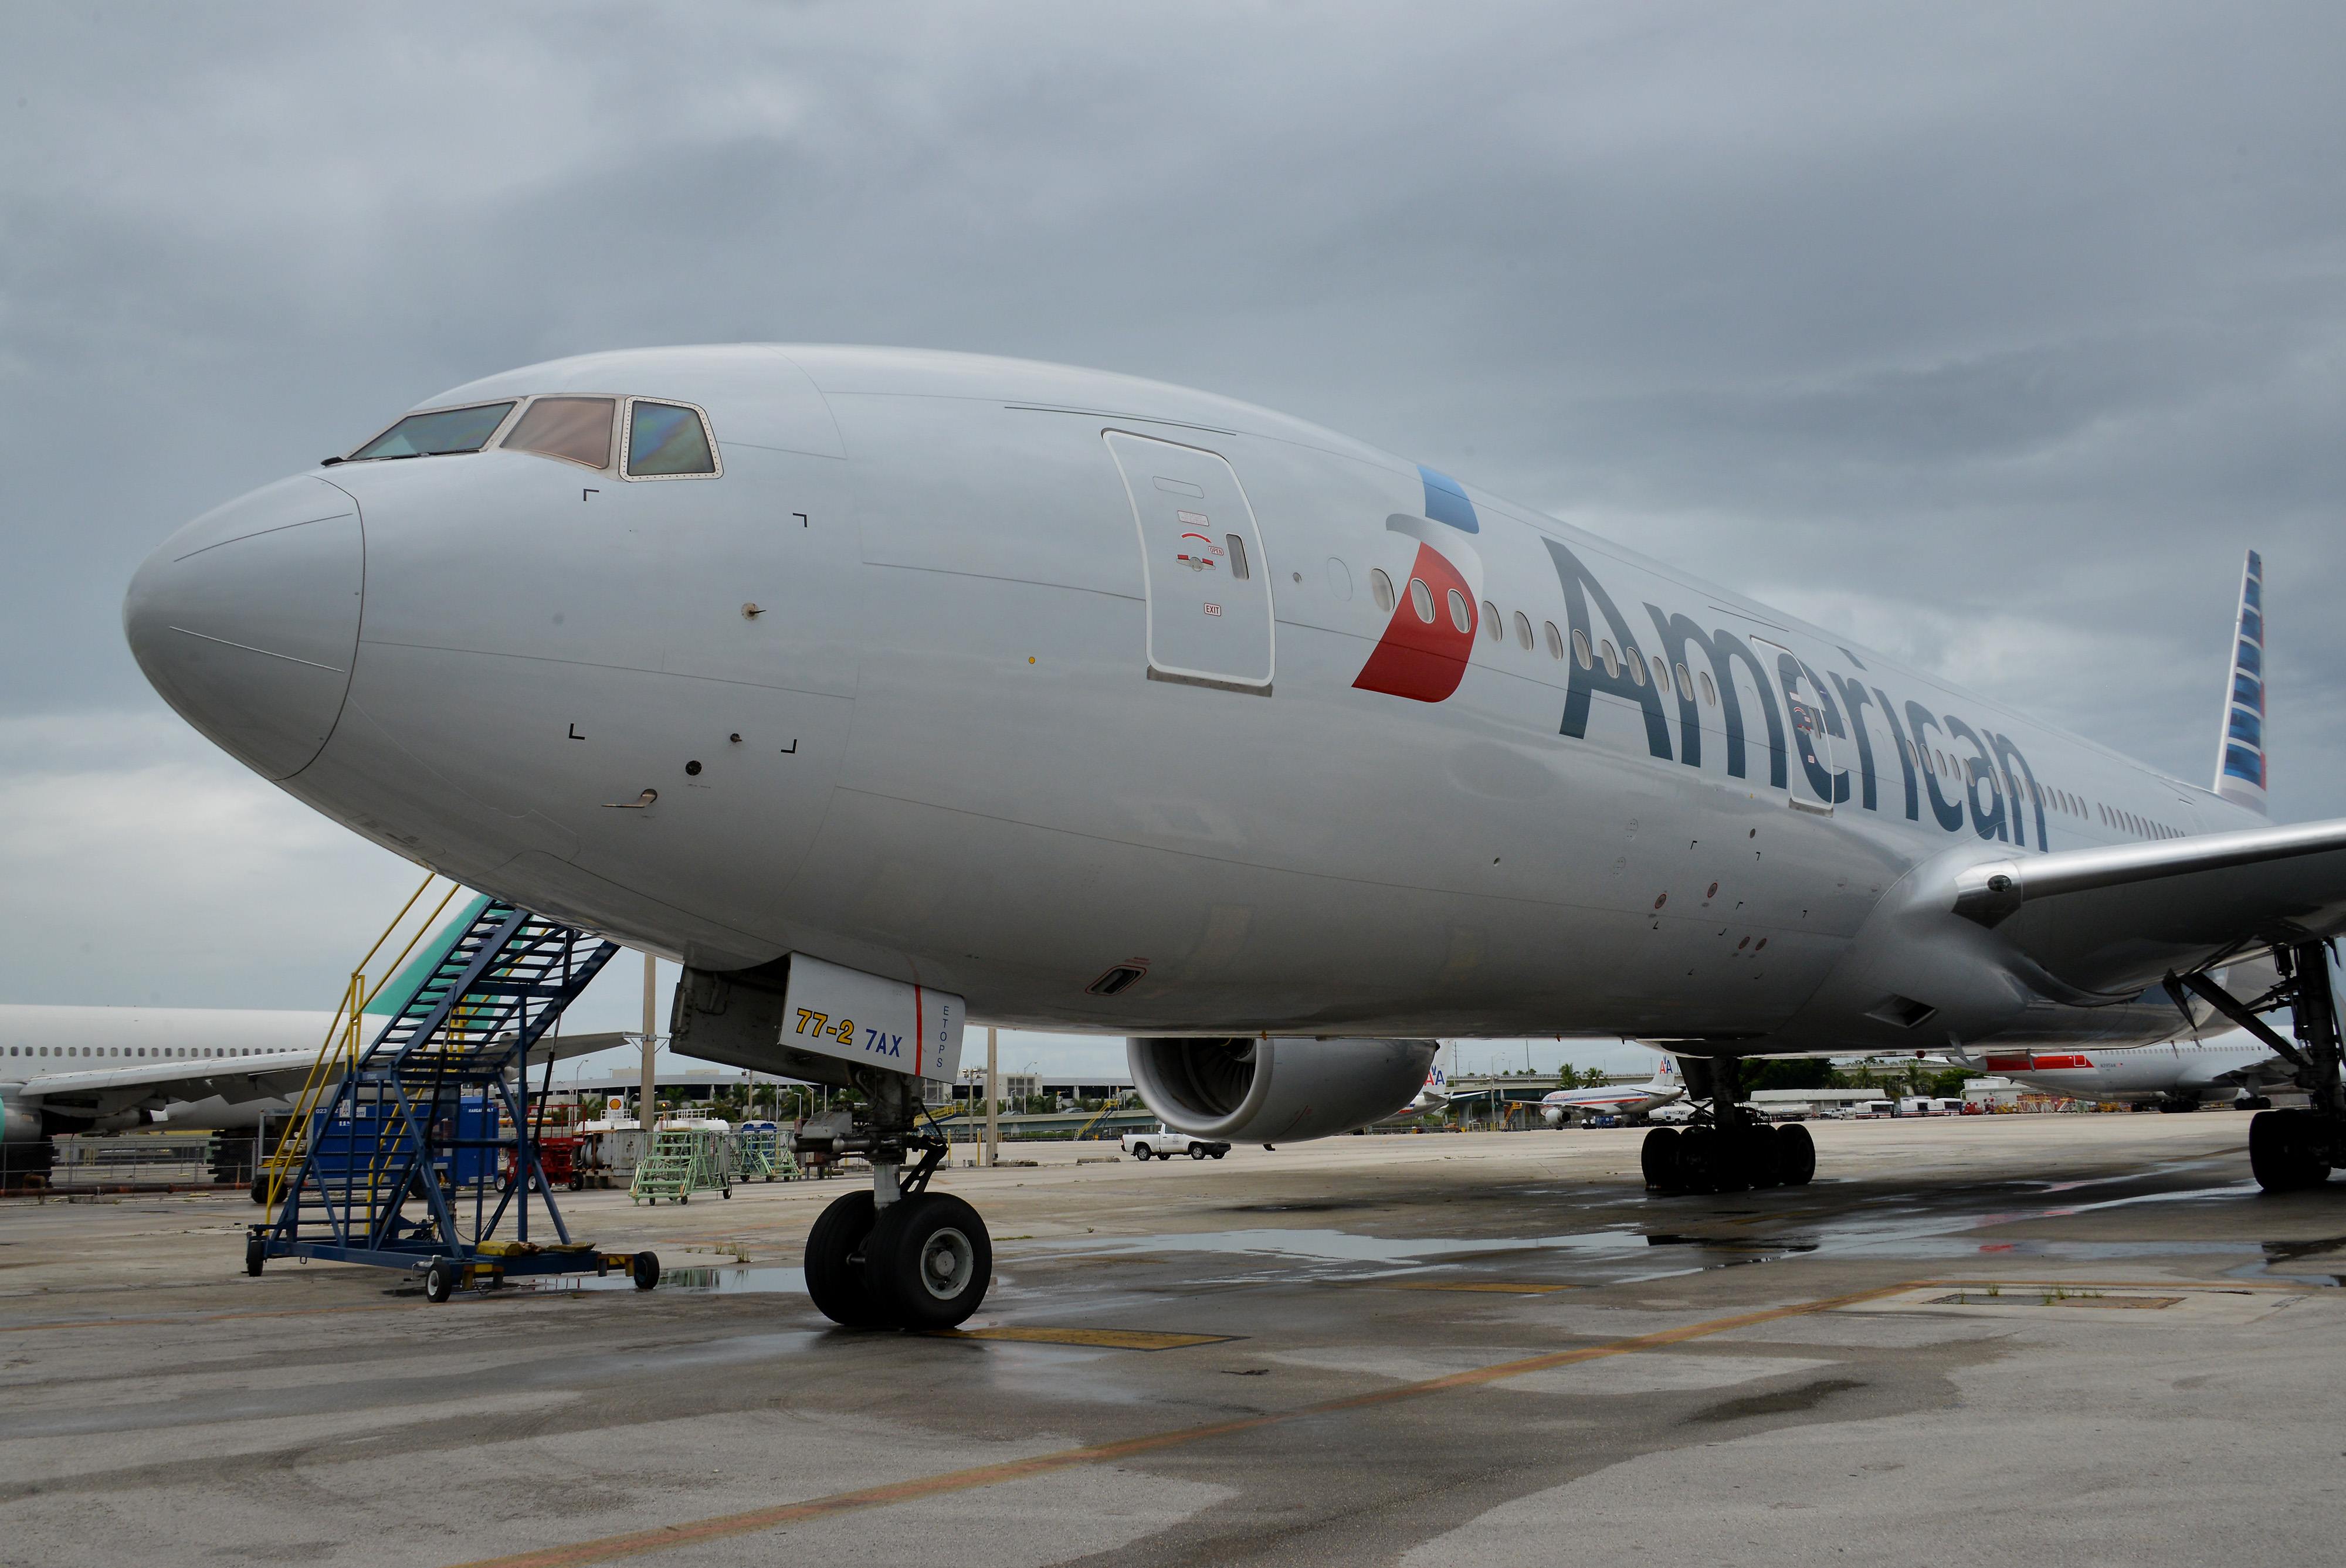 Operations At The American Airlines Group Inc. Terminal Ahead Of Earnings Figures